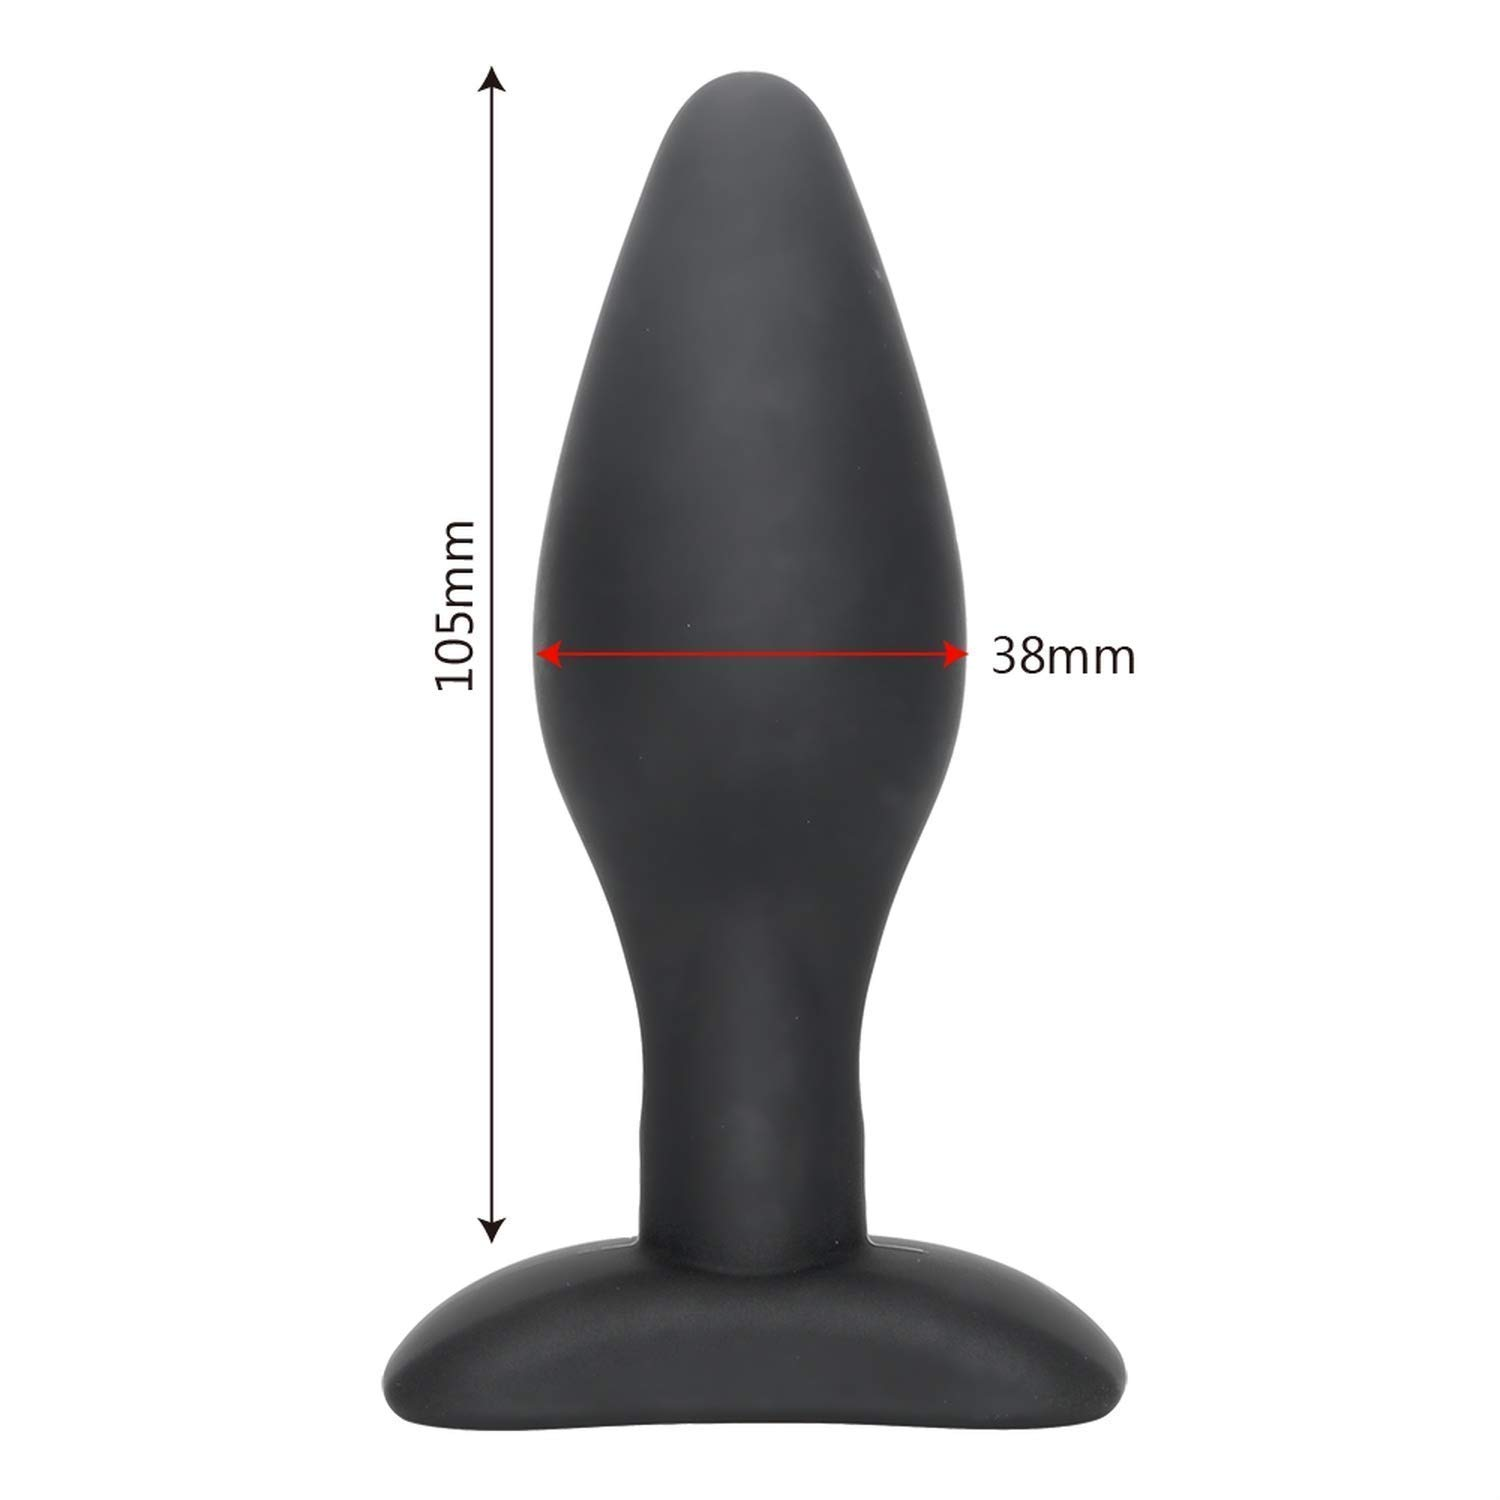 Amazon.com: Sex Toys Sexy Black Silicone Anal Plug Massage Adult Sex Toys  for Women Man Gay Anal But Plug Set Buttplug Butt PlugsMiddle: Health &  Personal ...